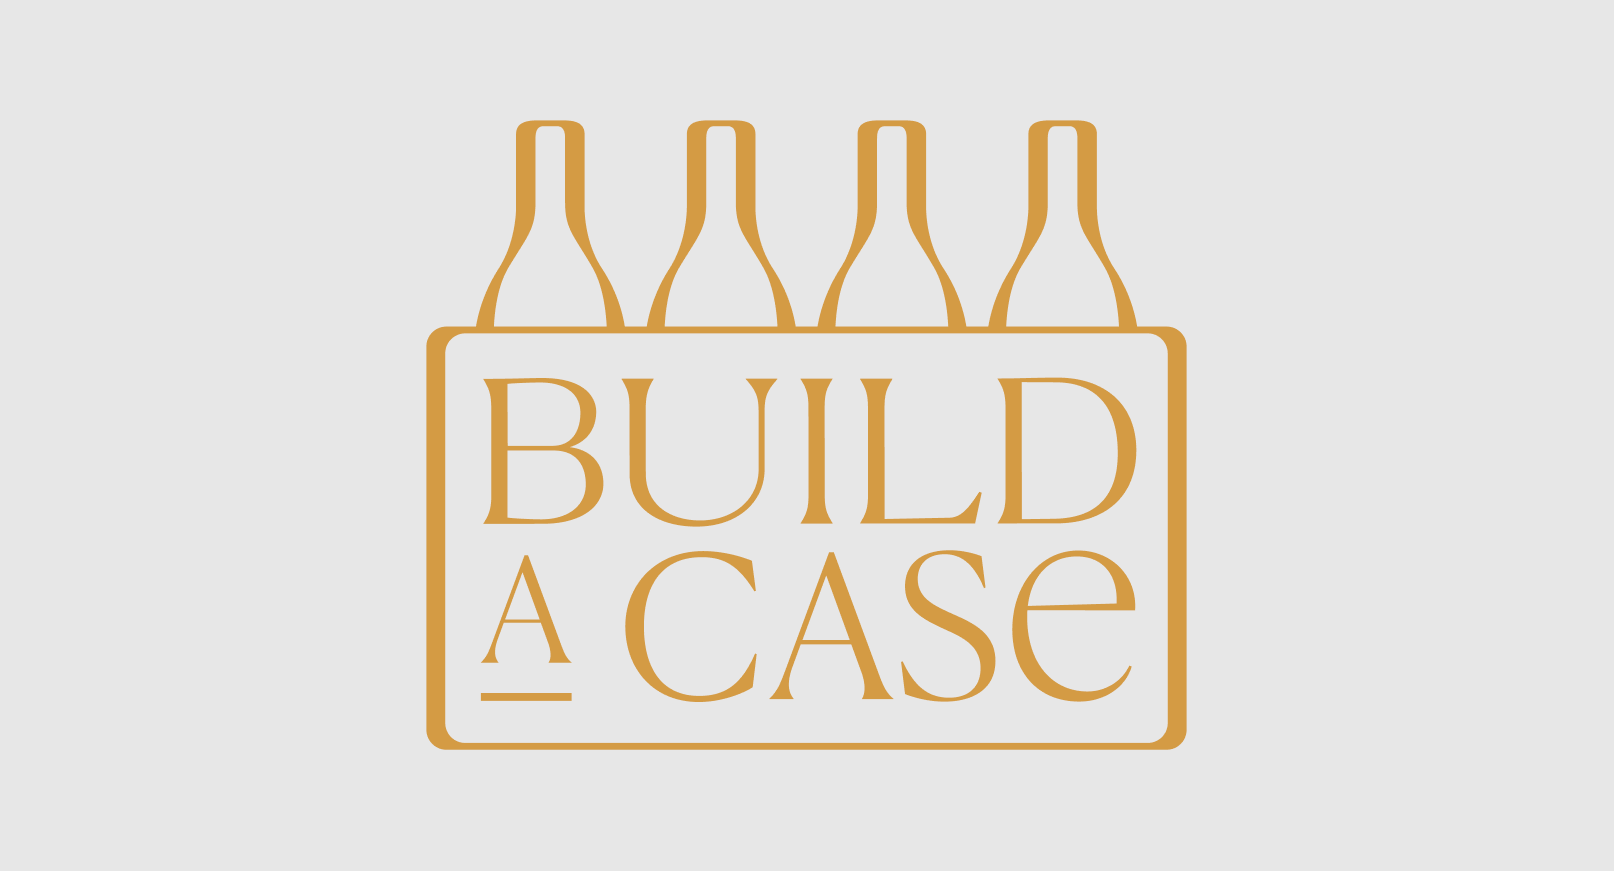 Build a case at your own pace